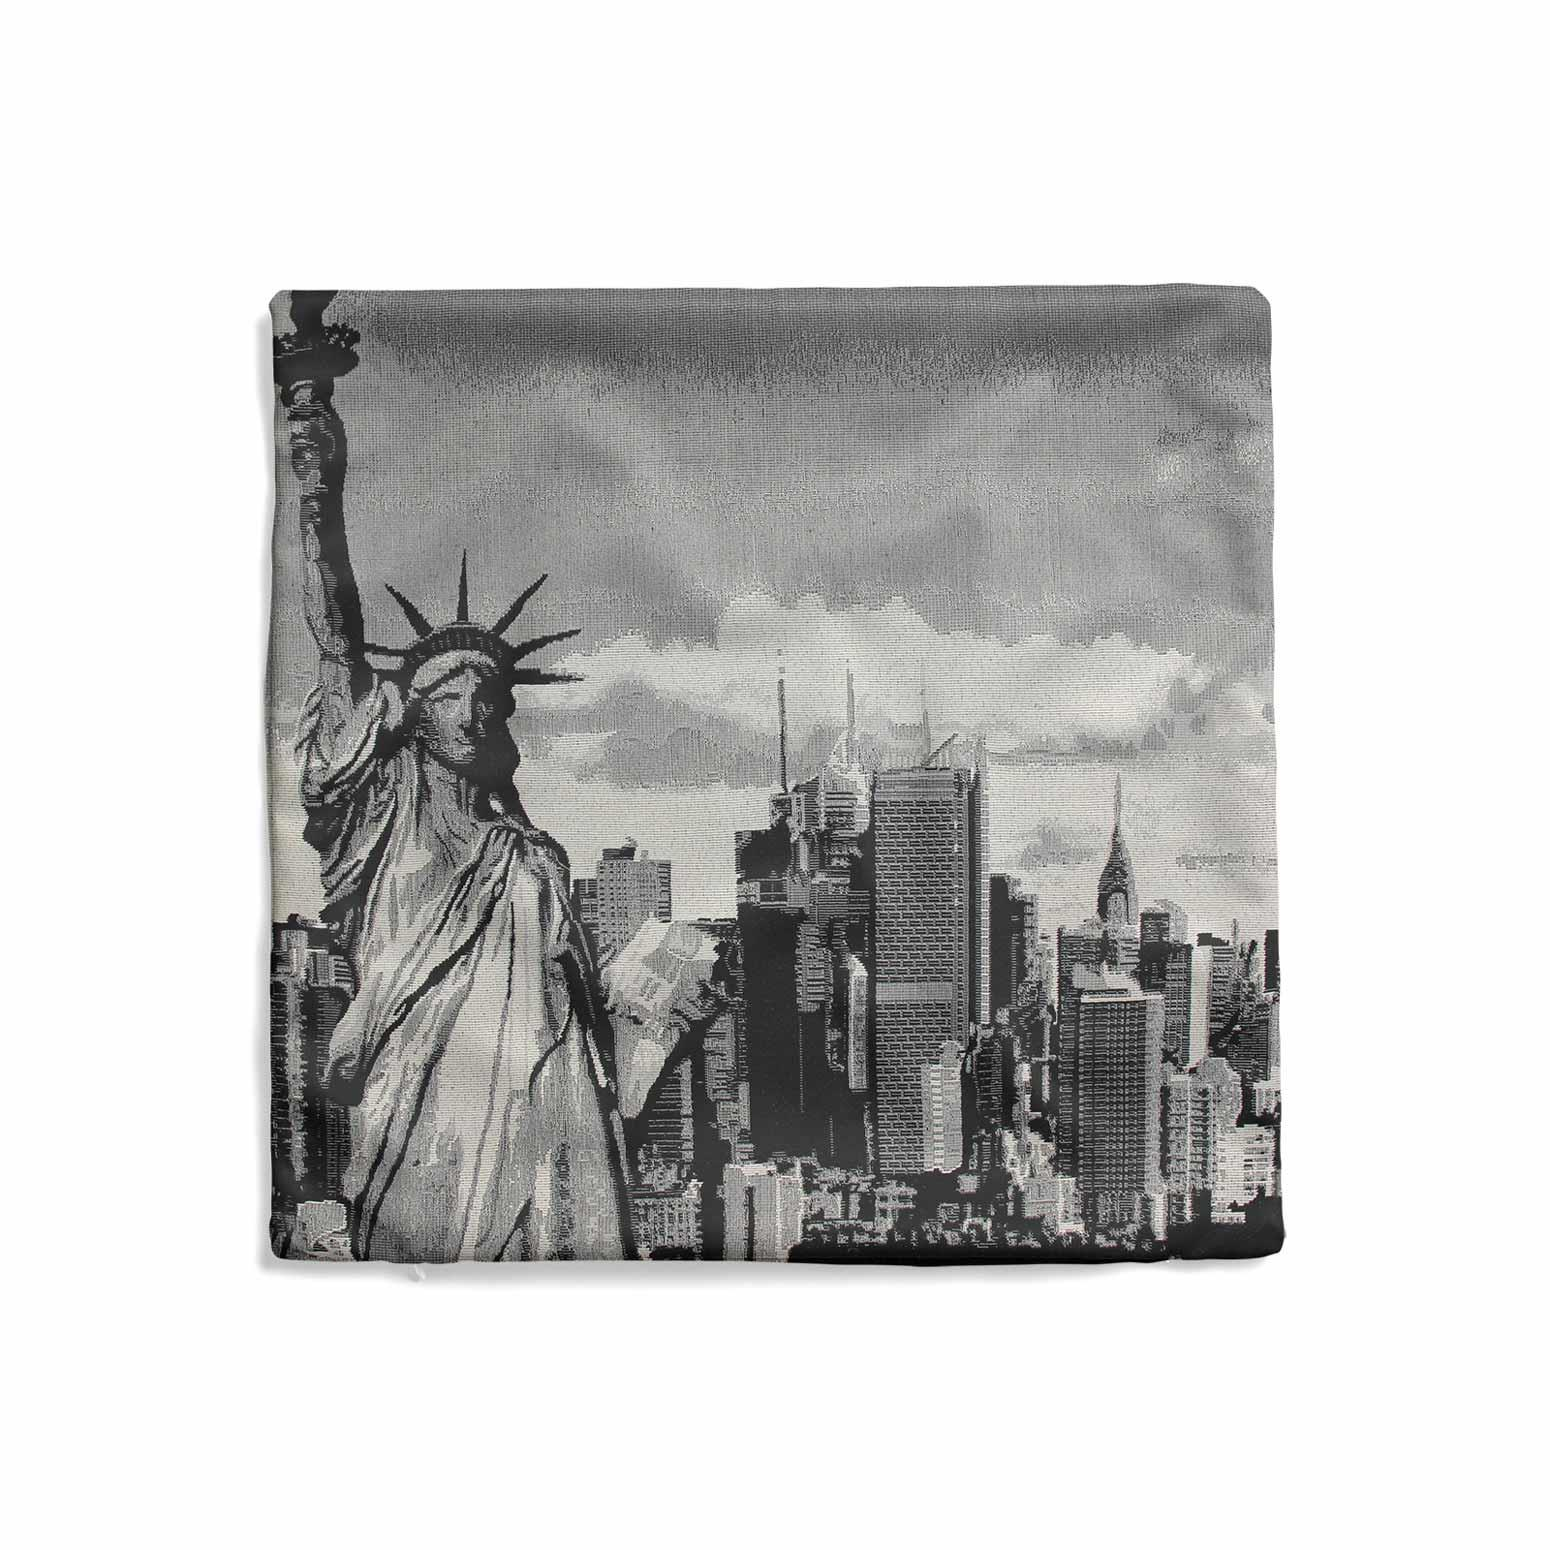 Tapestry-Cushion-Covers-Vintage-Pillow-Cover-Collection-18-034-45cm-Filled-Cushions thumbnail 113